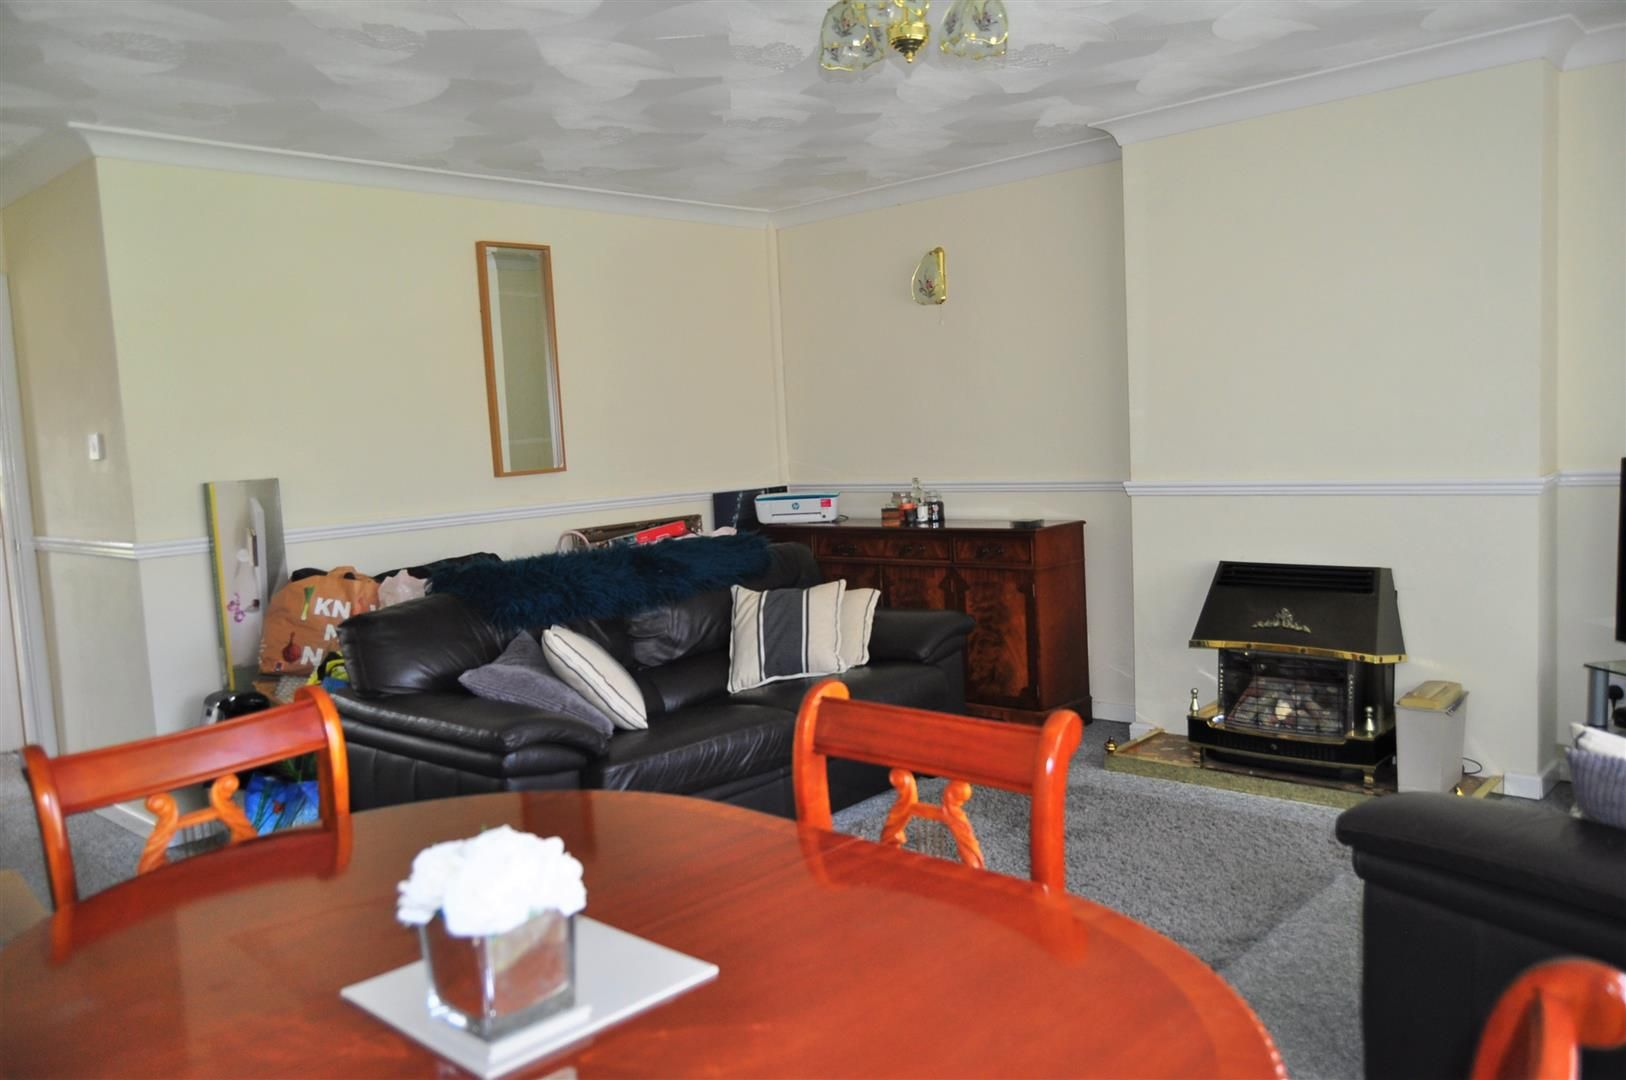 3 bed end-of-terrace for sale in Quinton 3